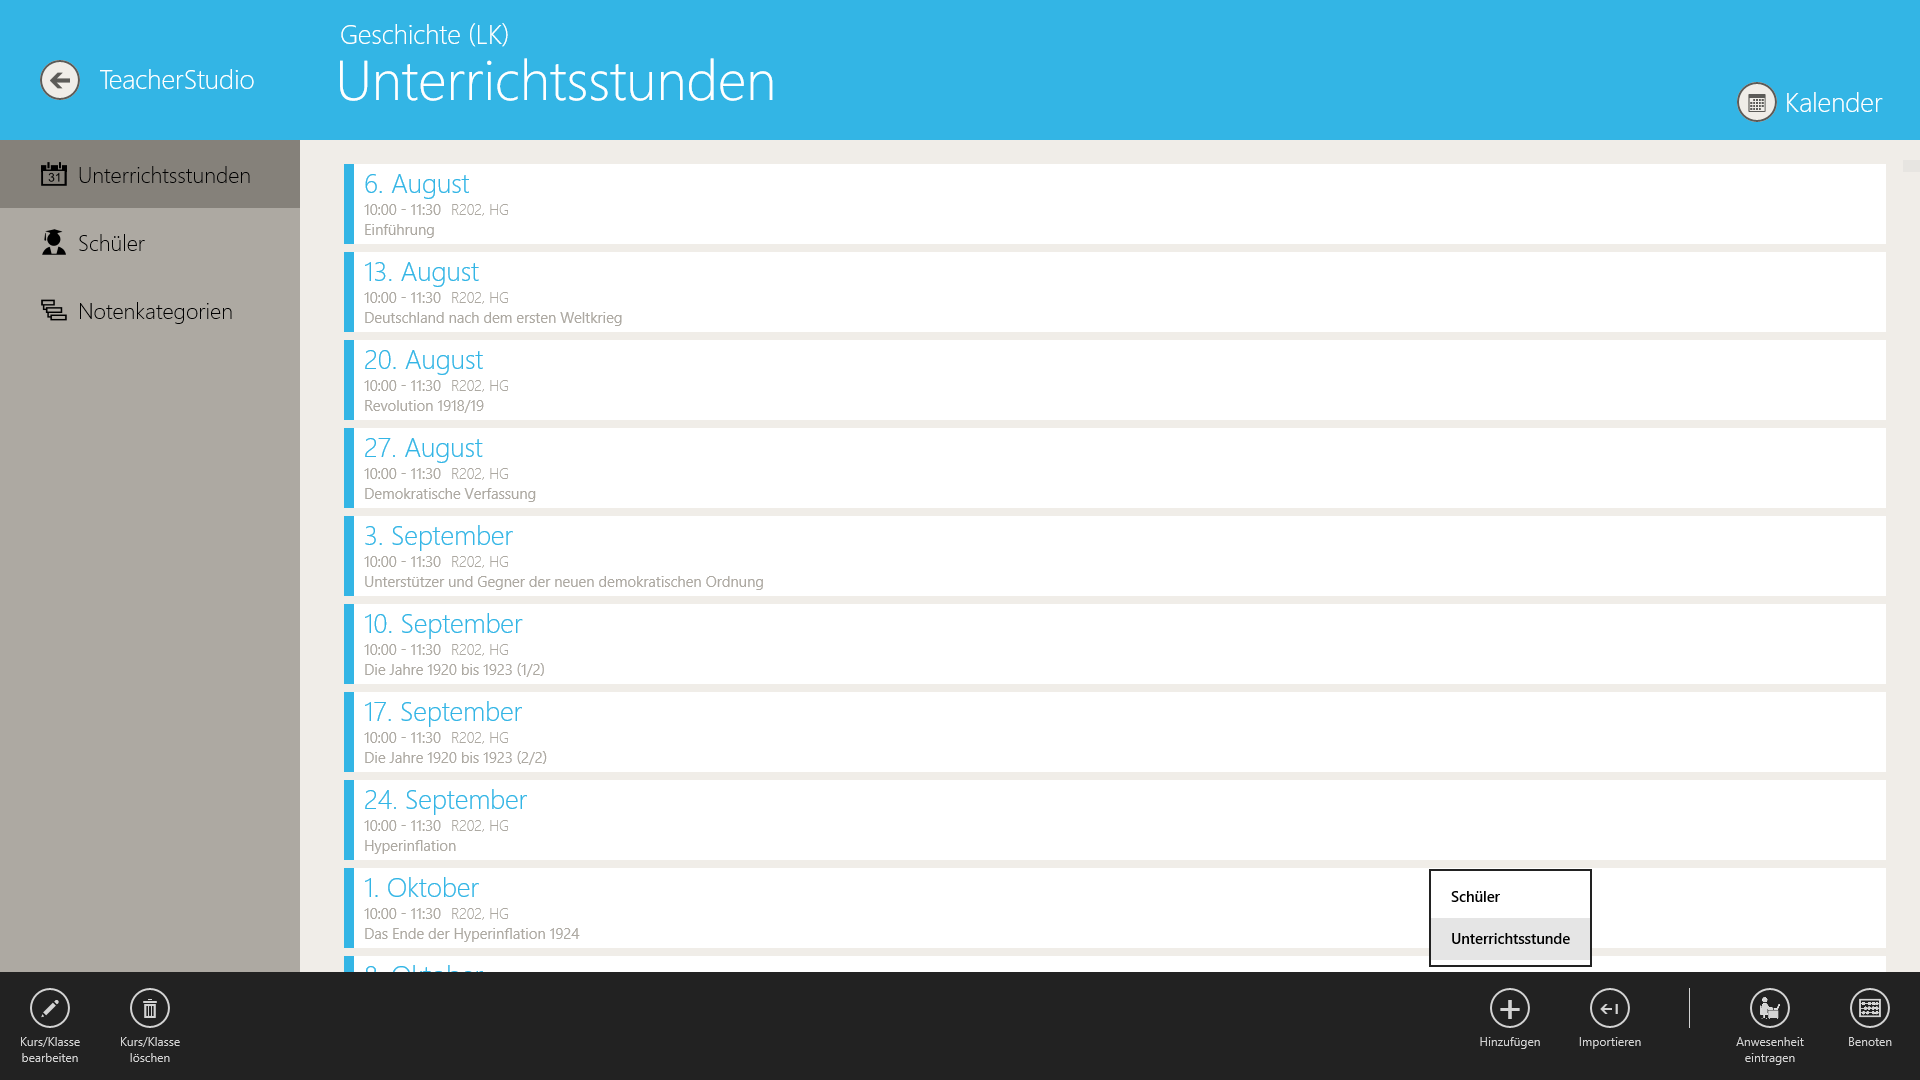 TeacherStudio-Handbuch-Windows-Stundenplan-Unterrichtsstunde-anlegen